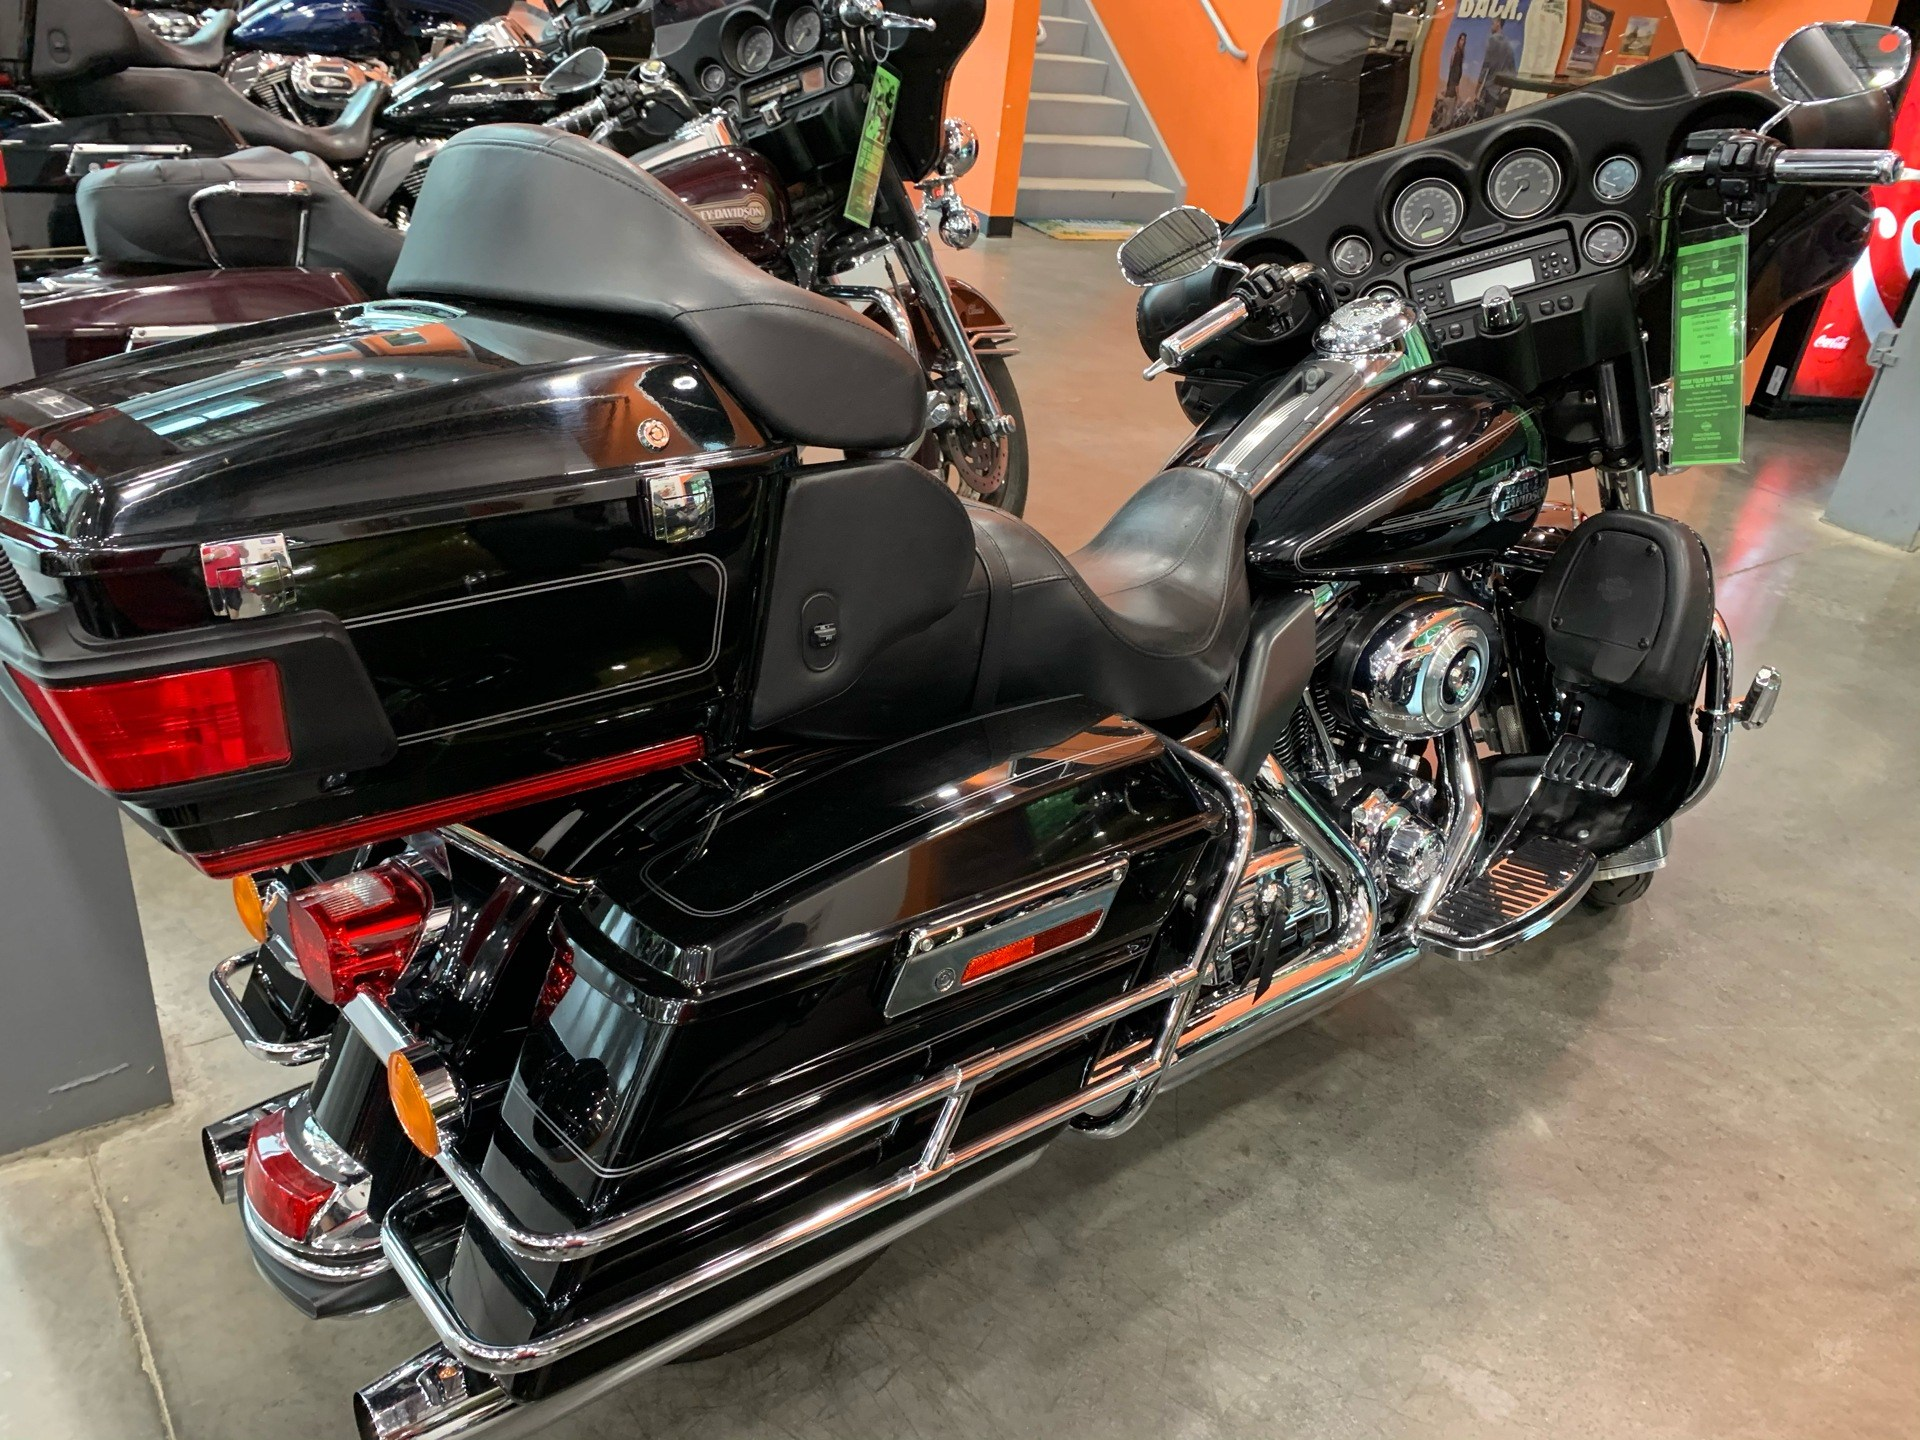 2012 Harley-Davidson FLHTCU in Columbia, Tennessee - Photo 8